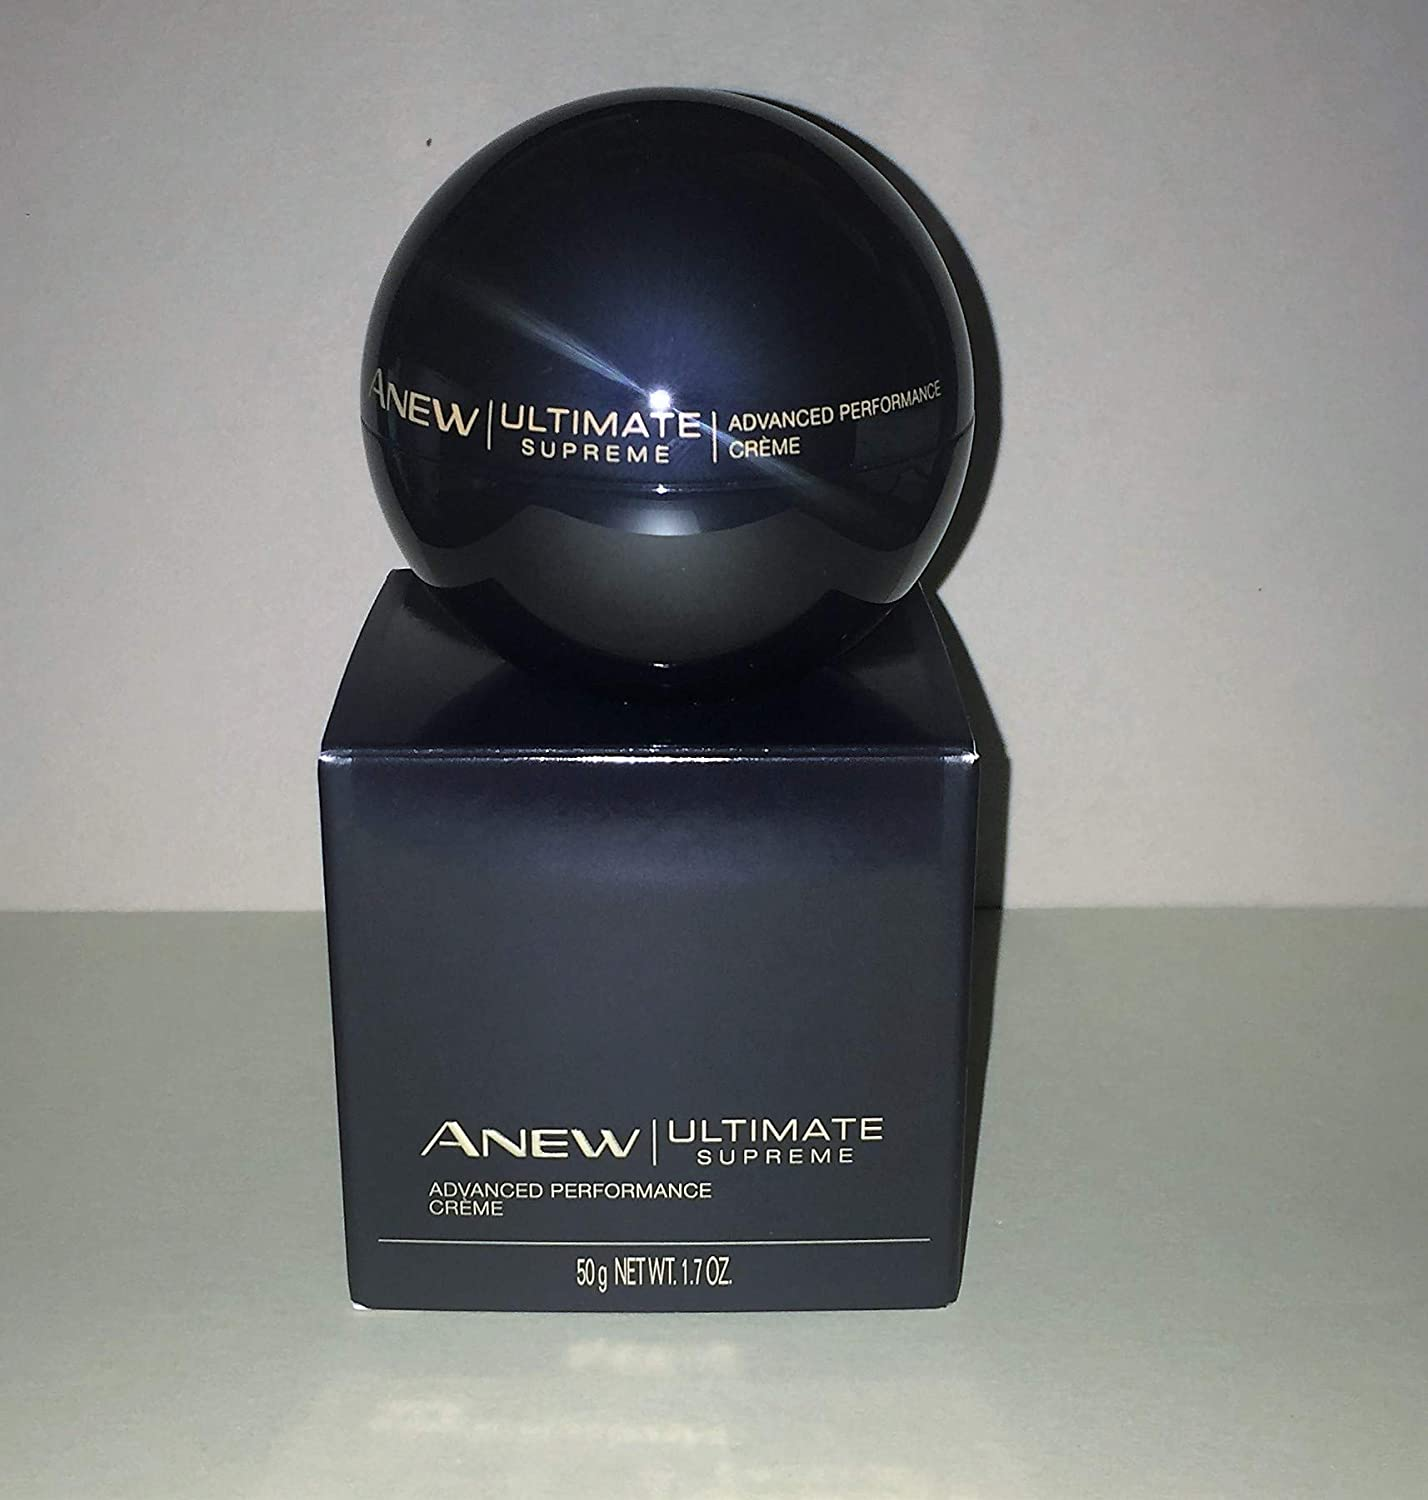 AVON Anew Ultimate Supreme Advance Performance Cream 1.07 oz …Brand New from AVON